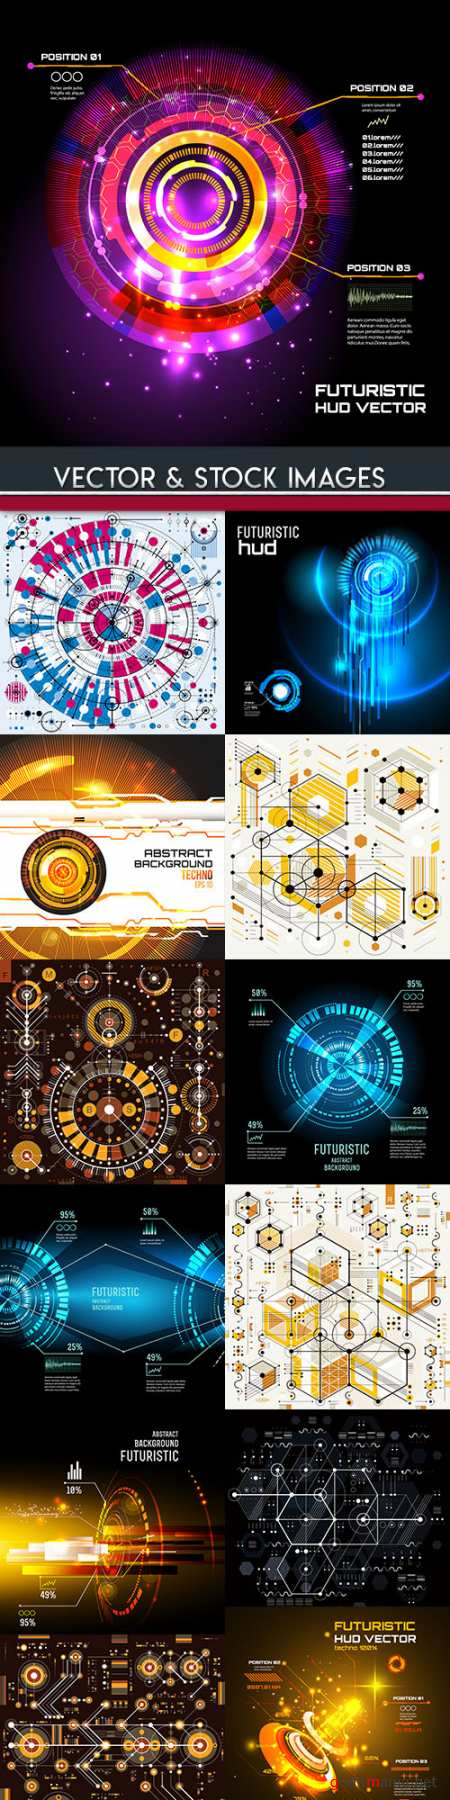 Technology system futuristic design background 5